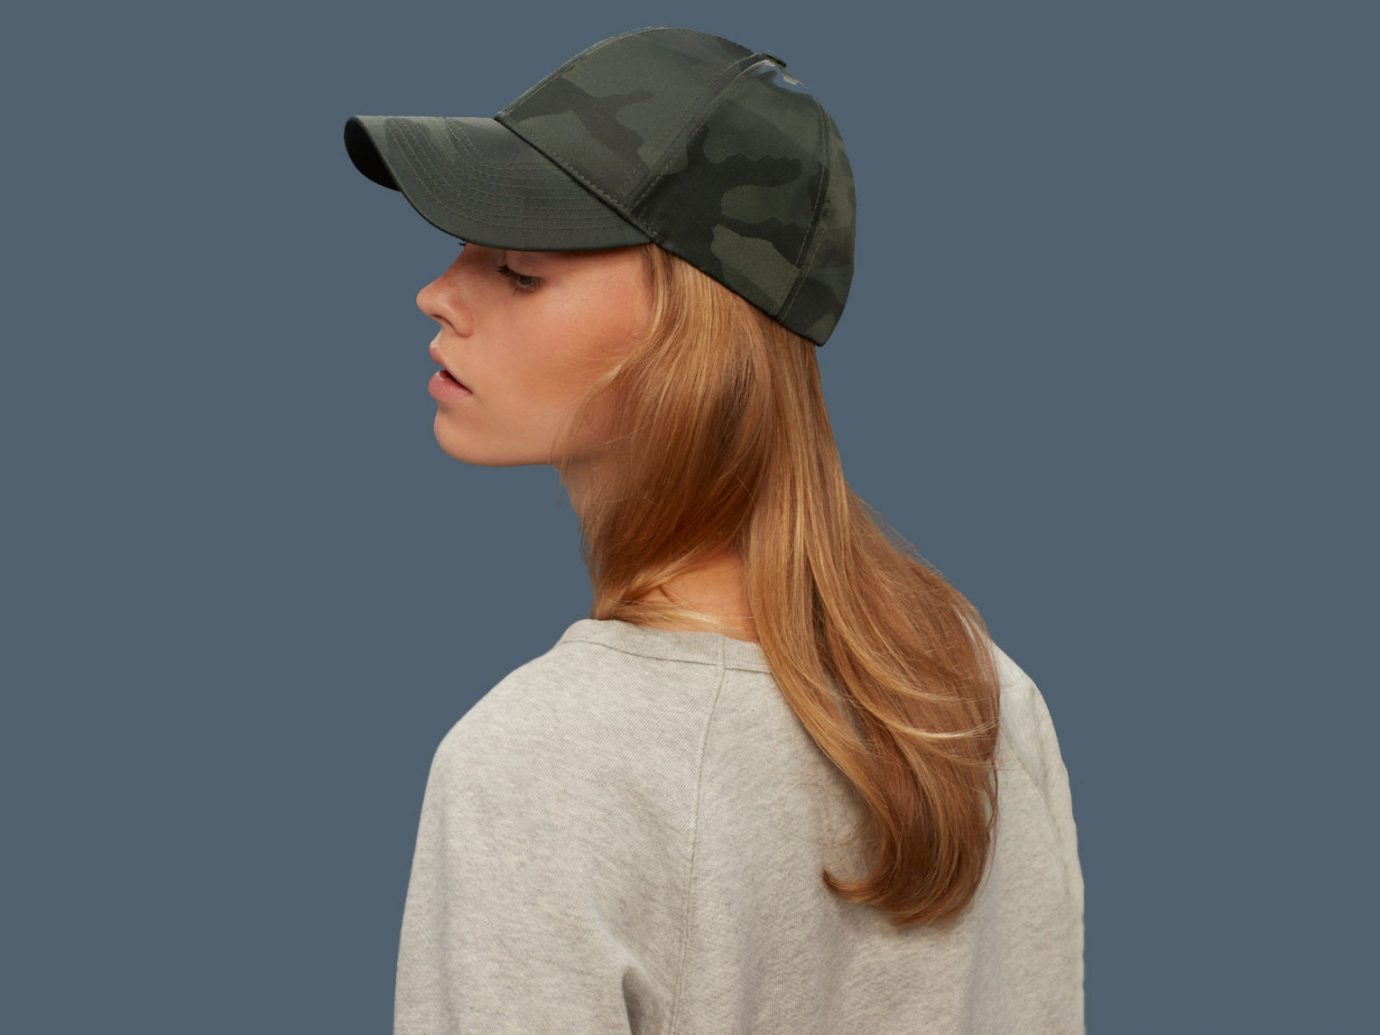 Style + Design person clothing hair cap wearing hat fashion accessory hairstyle headgear